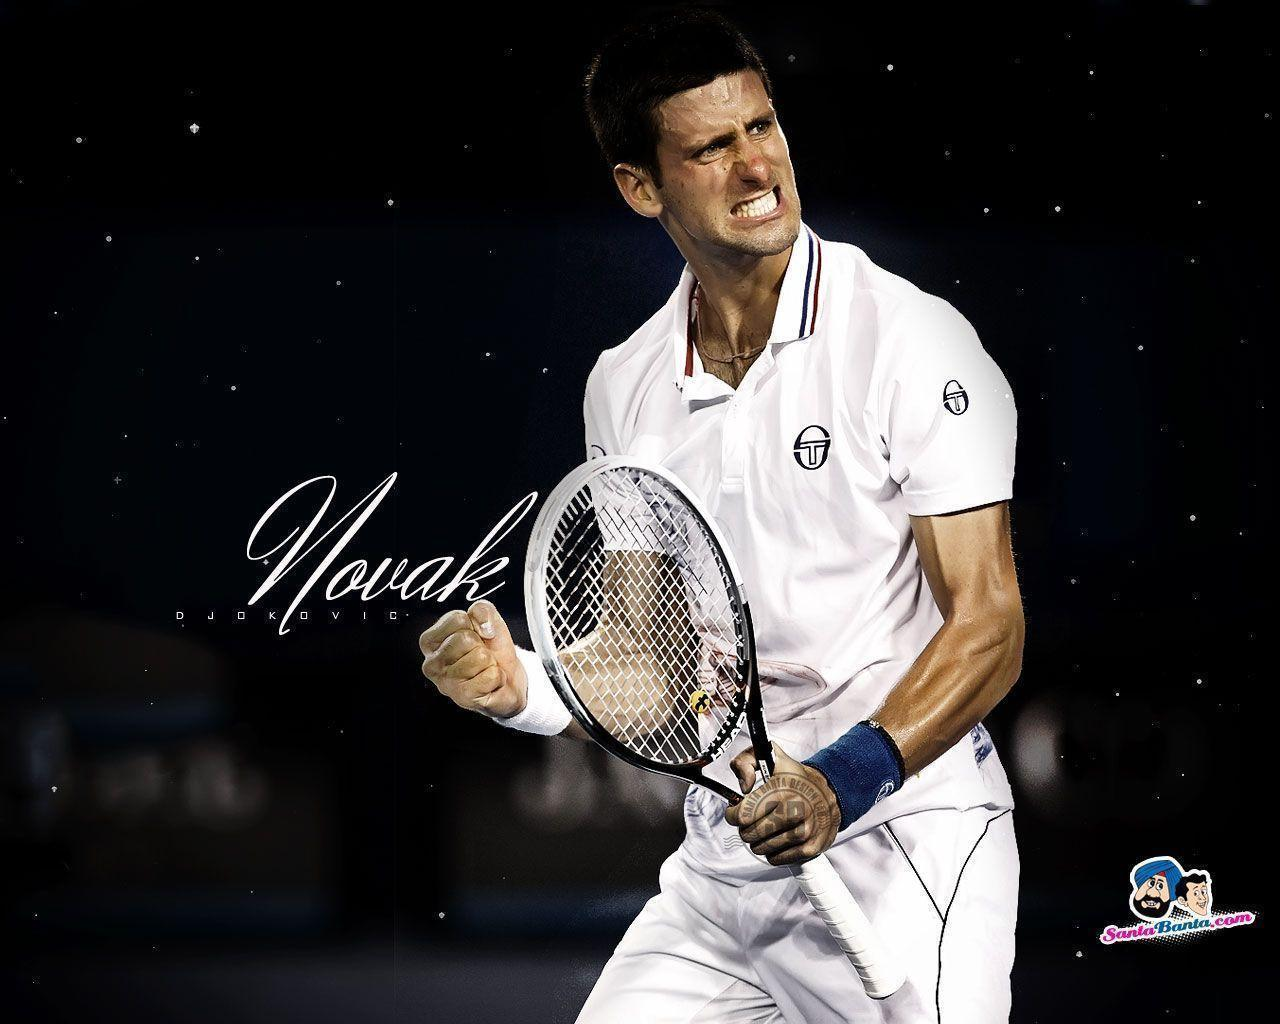 Novak Djokovic Hd Images 3 HD Wallpapers | lzamgs.